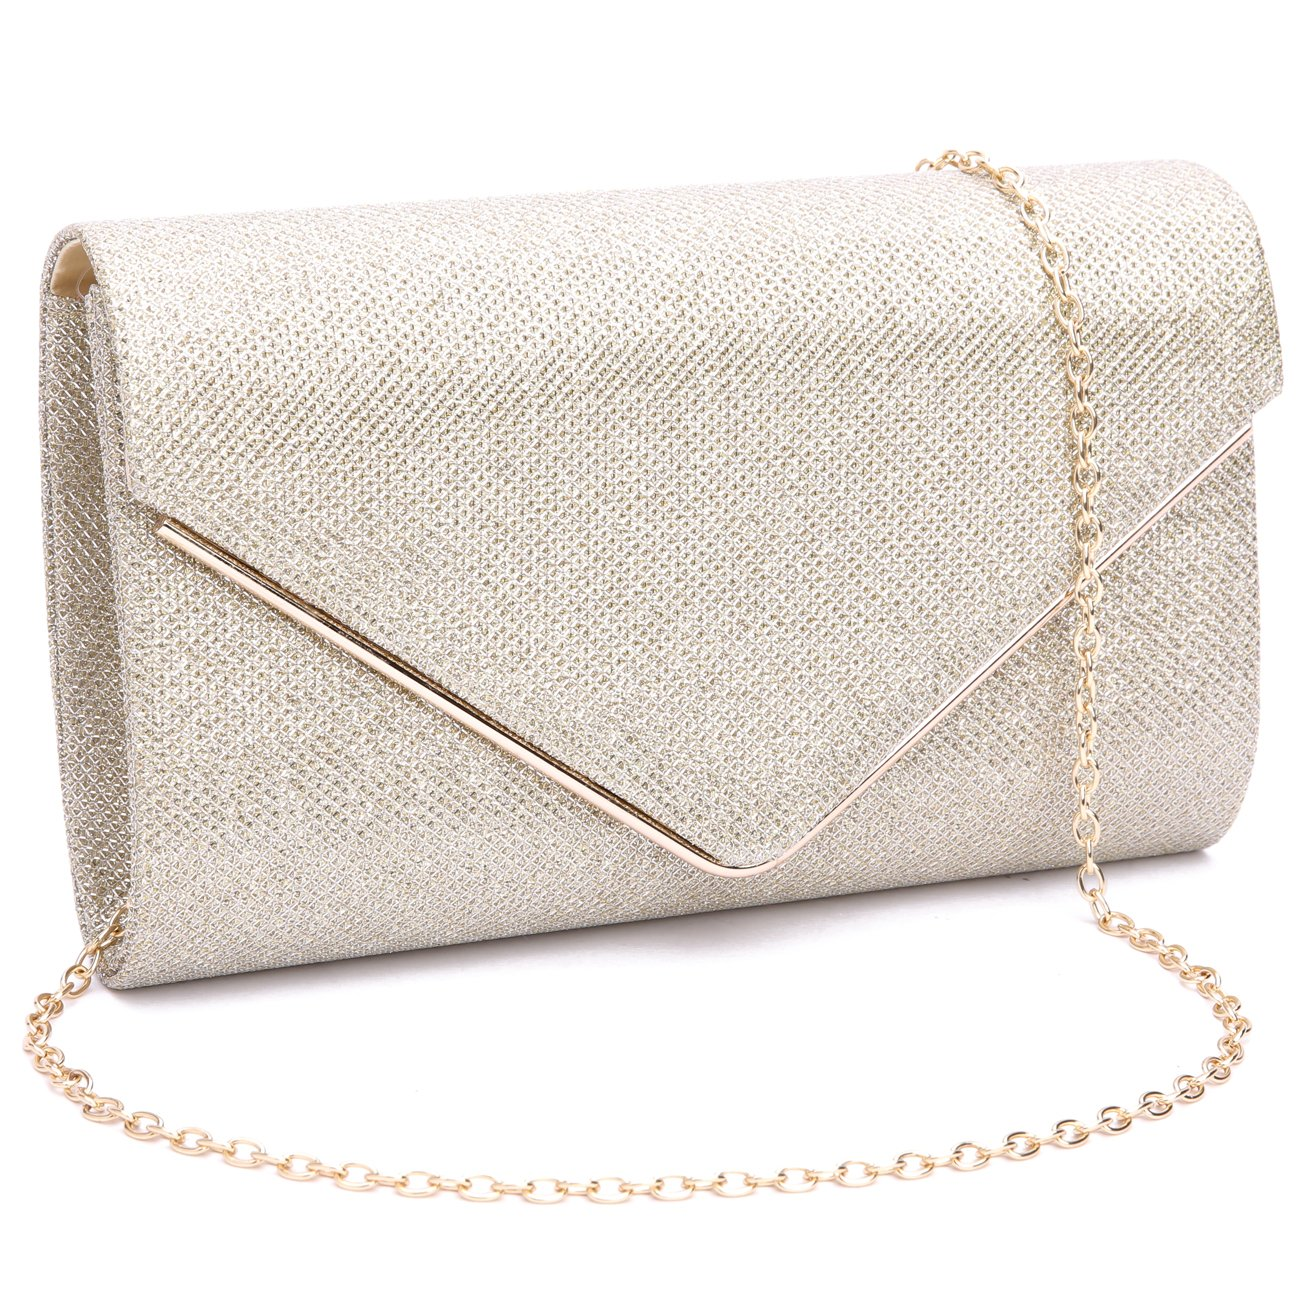 GESU Womens Shining Envelope Clutch Purses Evening Bag Handbags For Wedding and Party.(Gold-1)